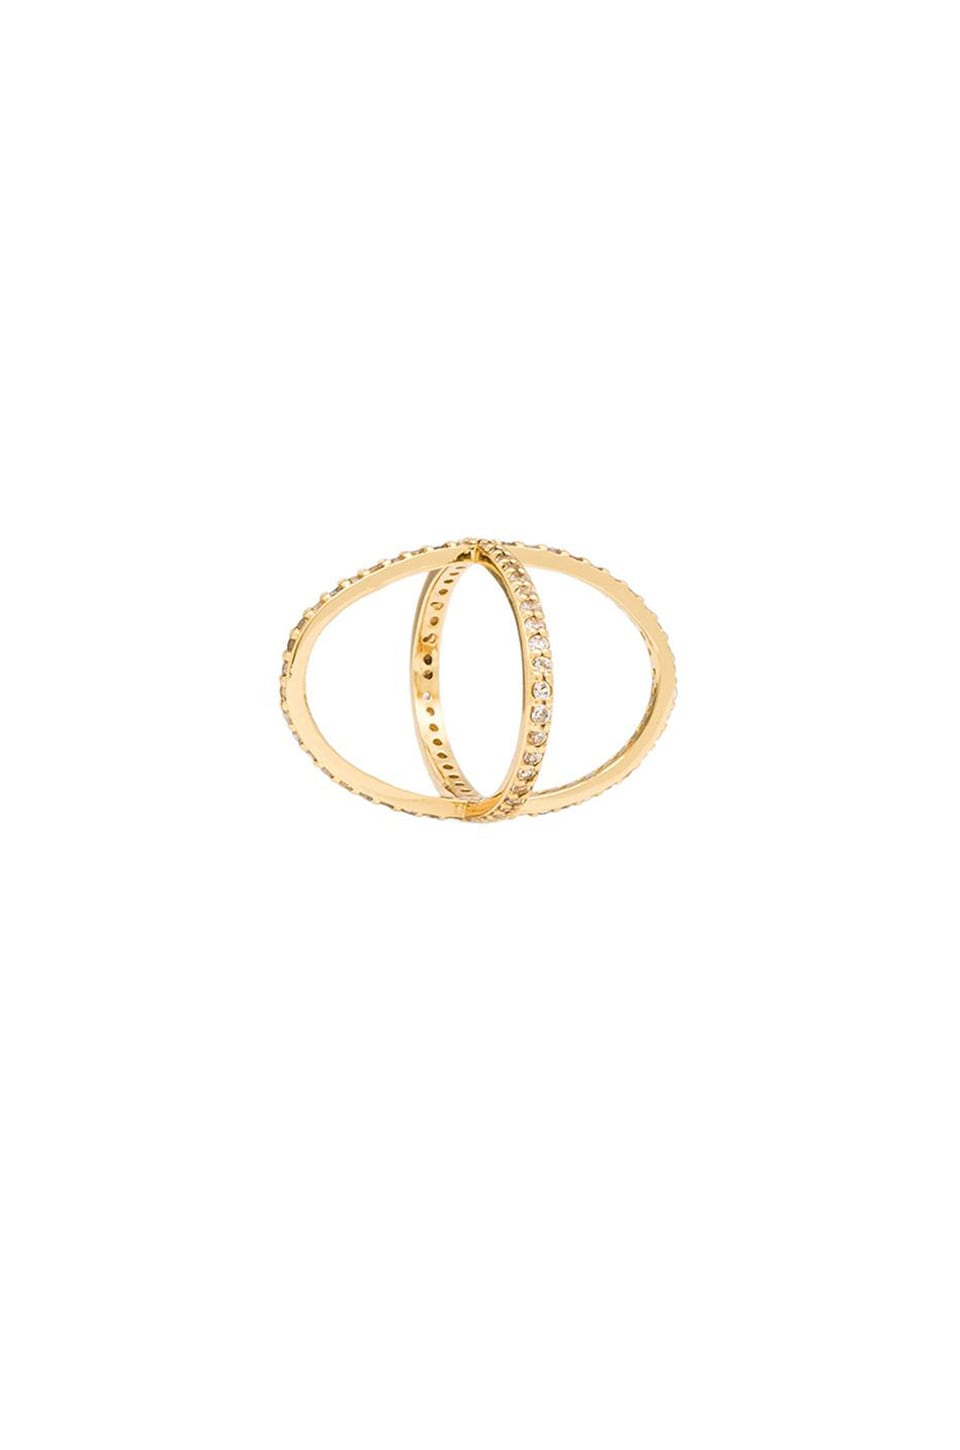 Alex Mika Criss Cross Ring in Gold